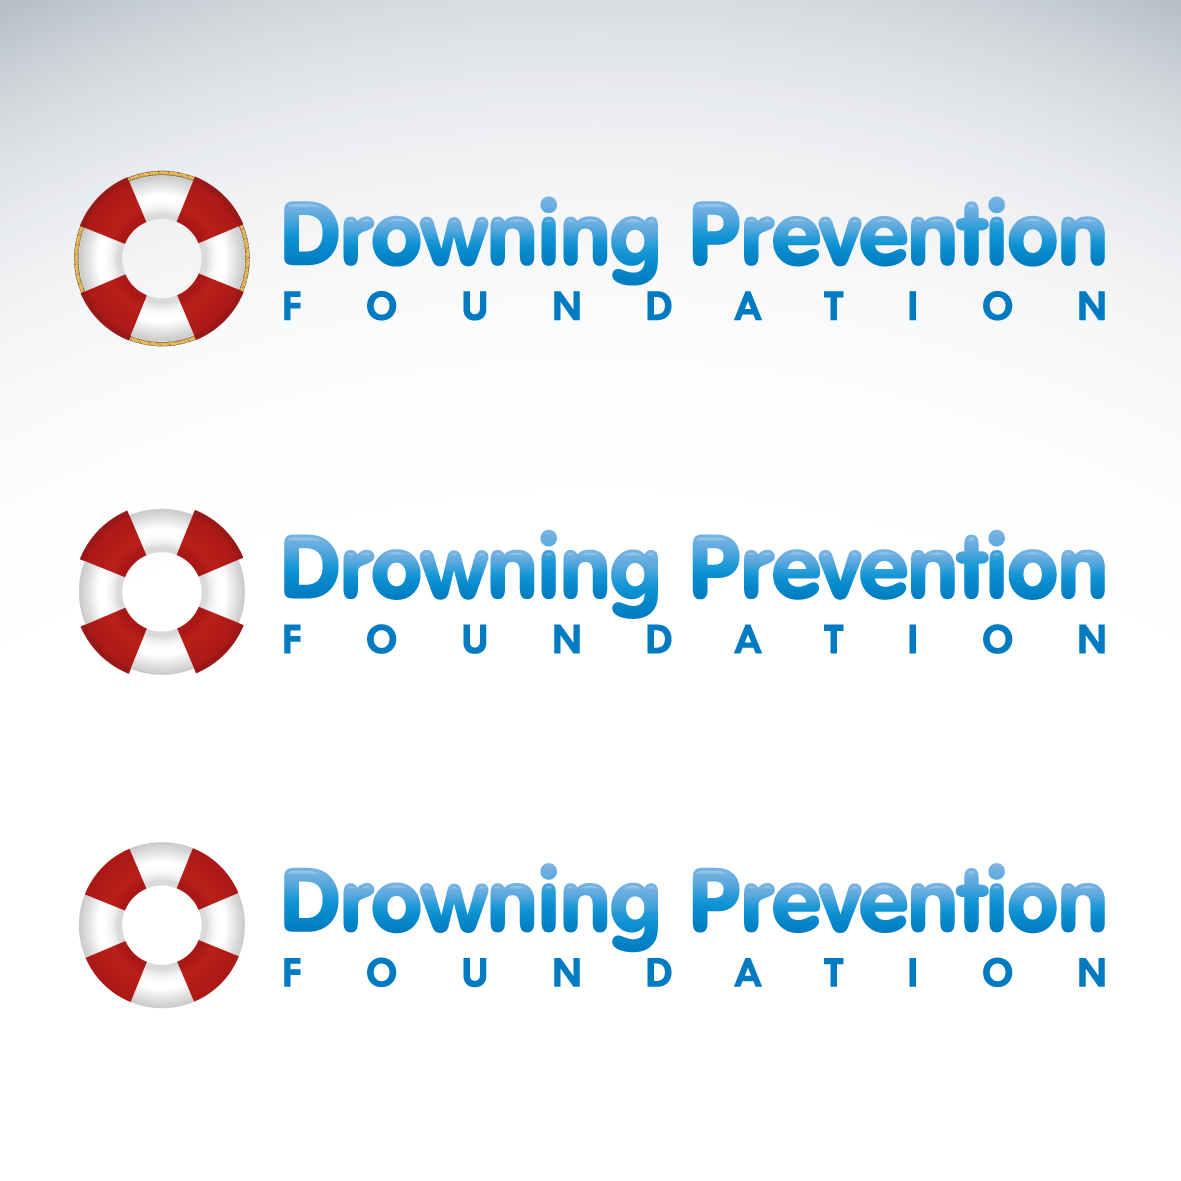 Create the next logo for Drowning Prevention Foundation